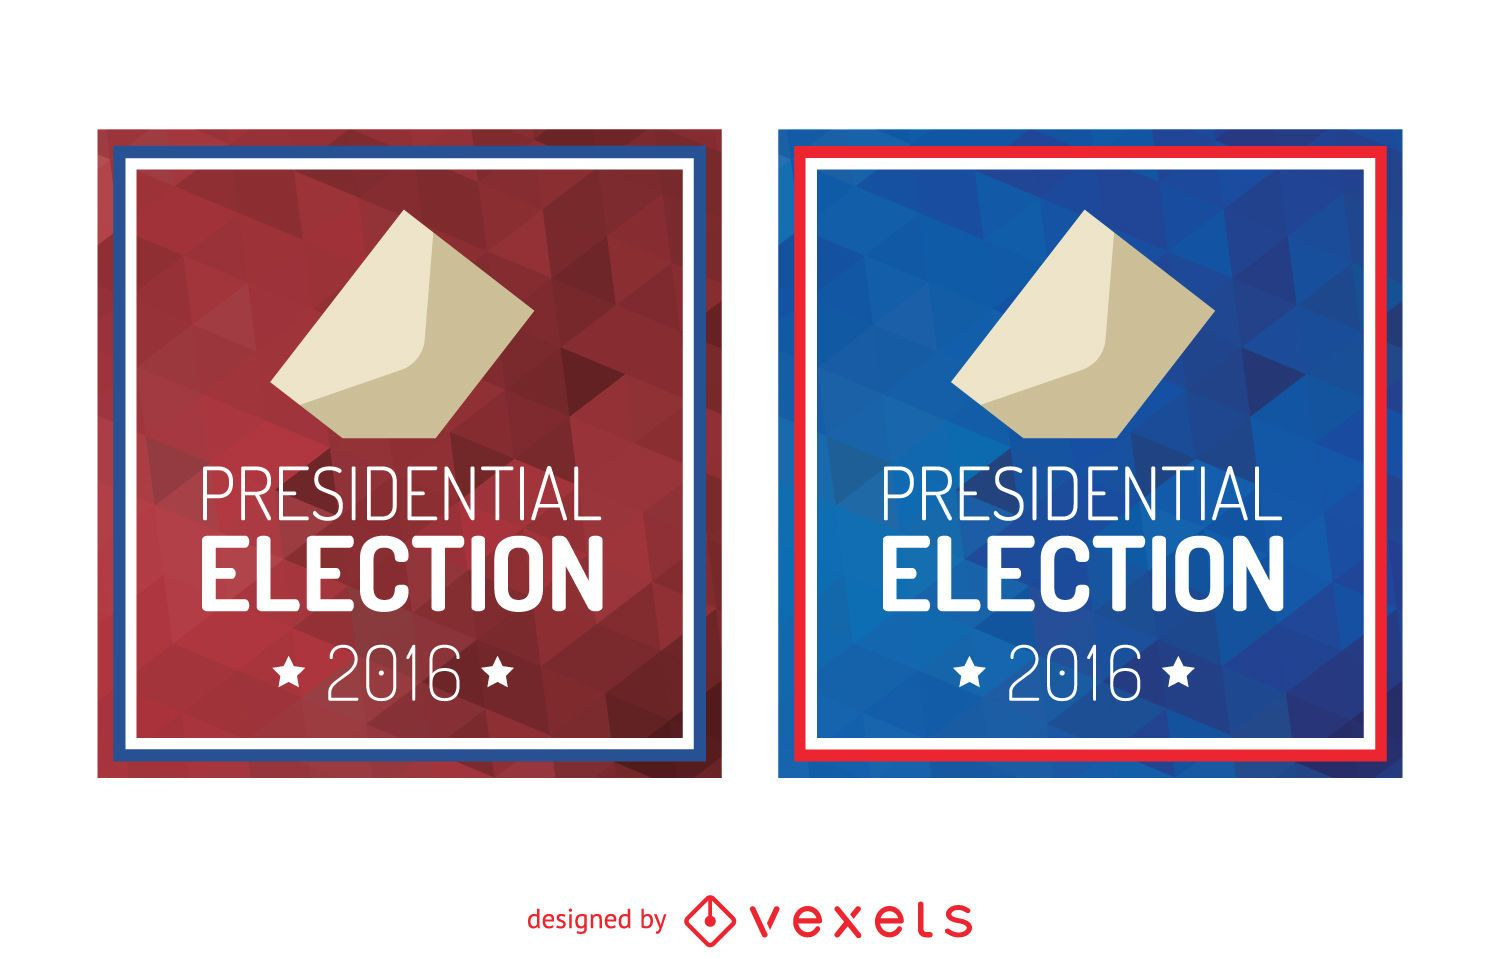 2016 presidential election sign vector download